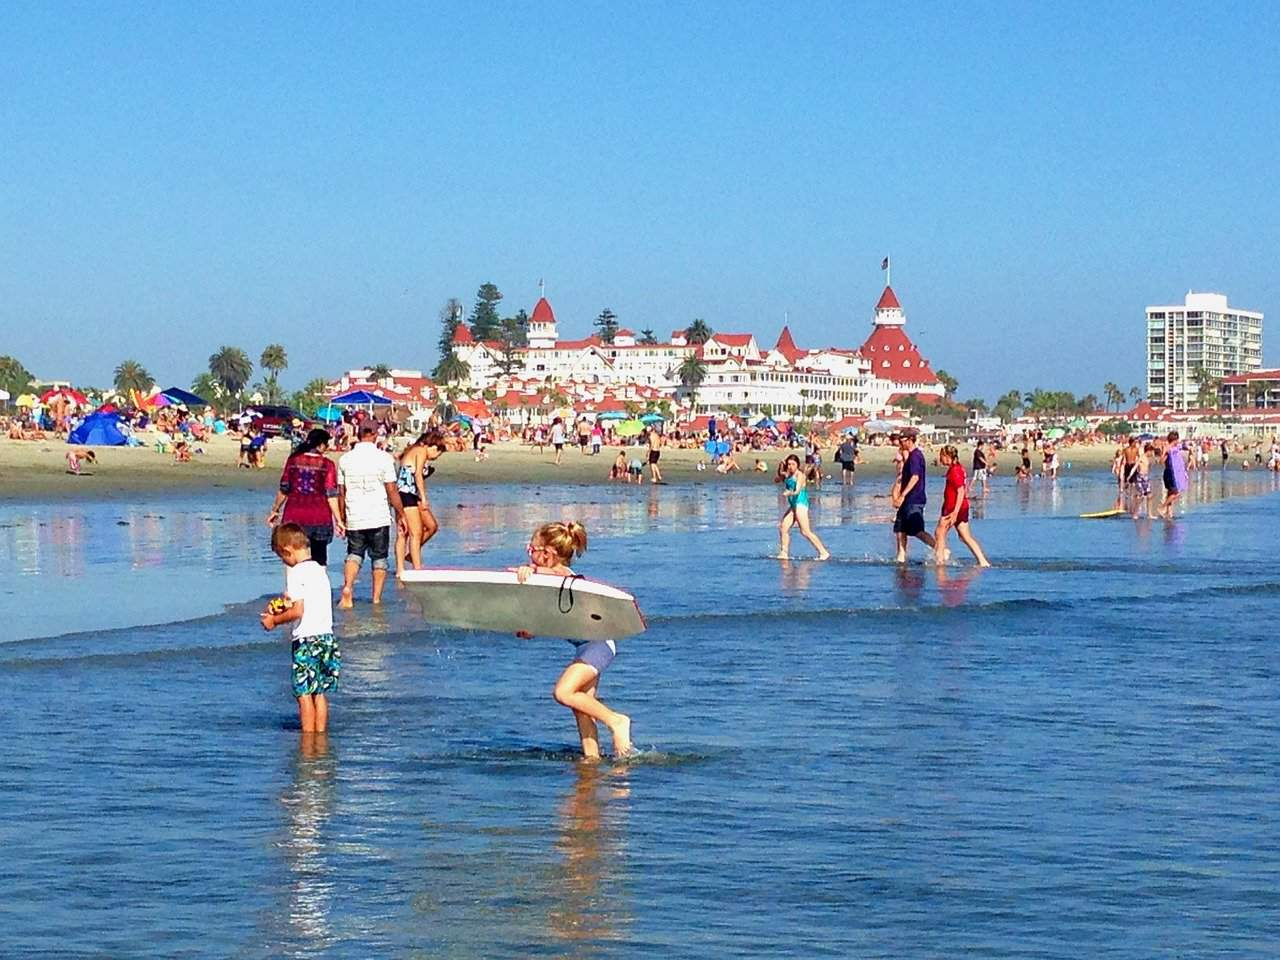 hotel del coronado is one of the best places to visit in San Diego with kids